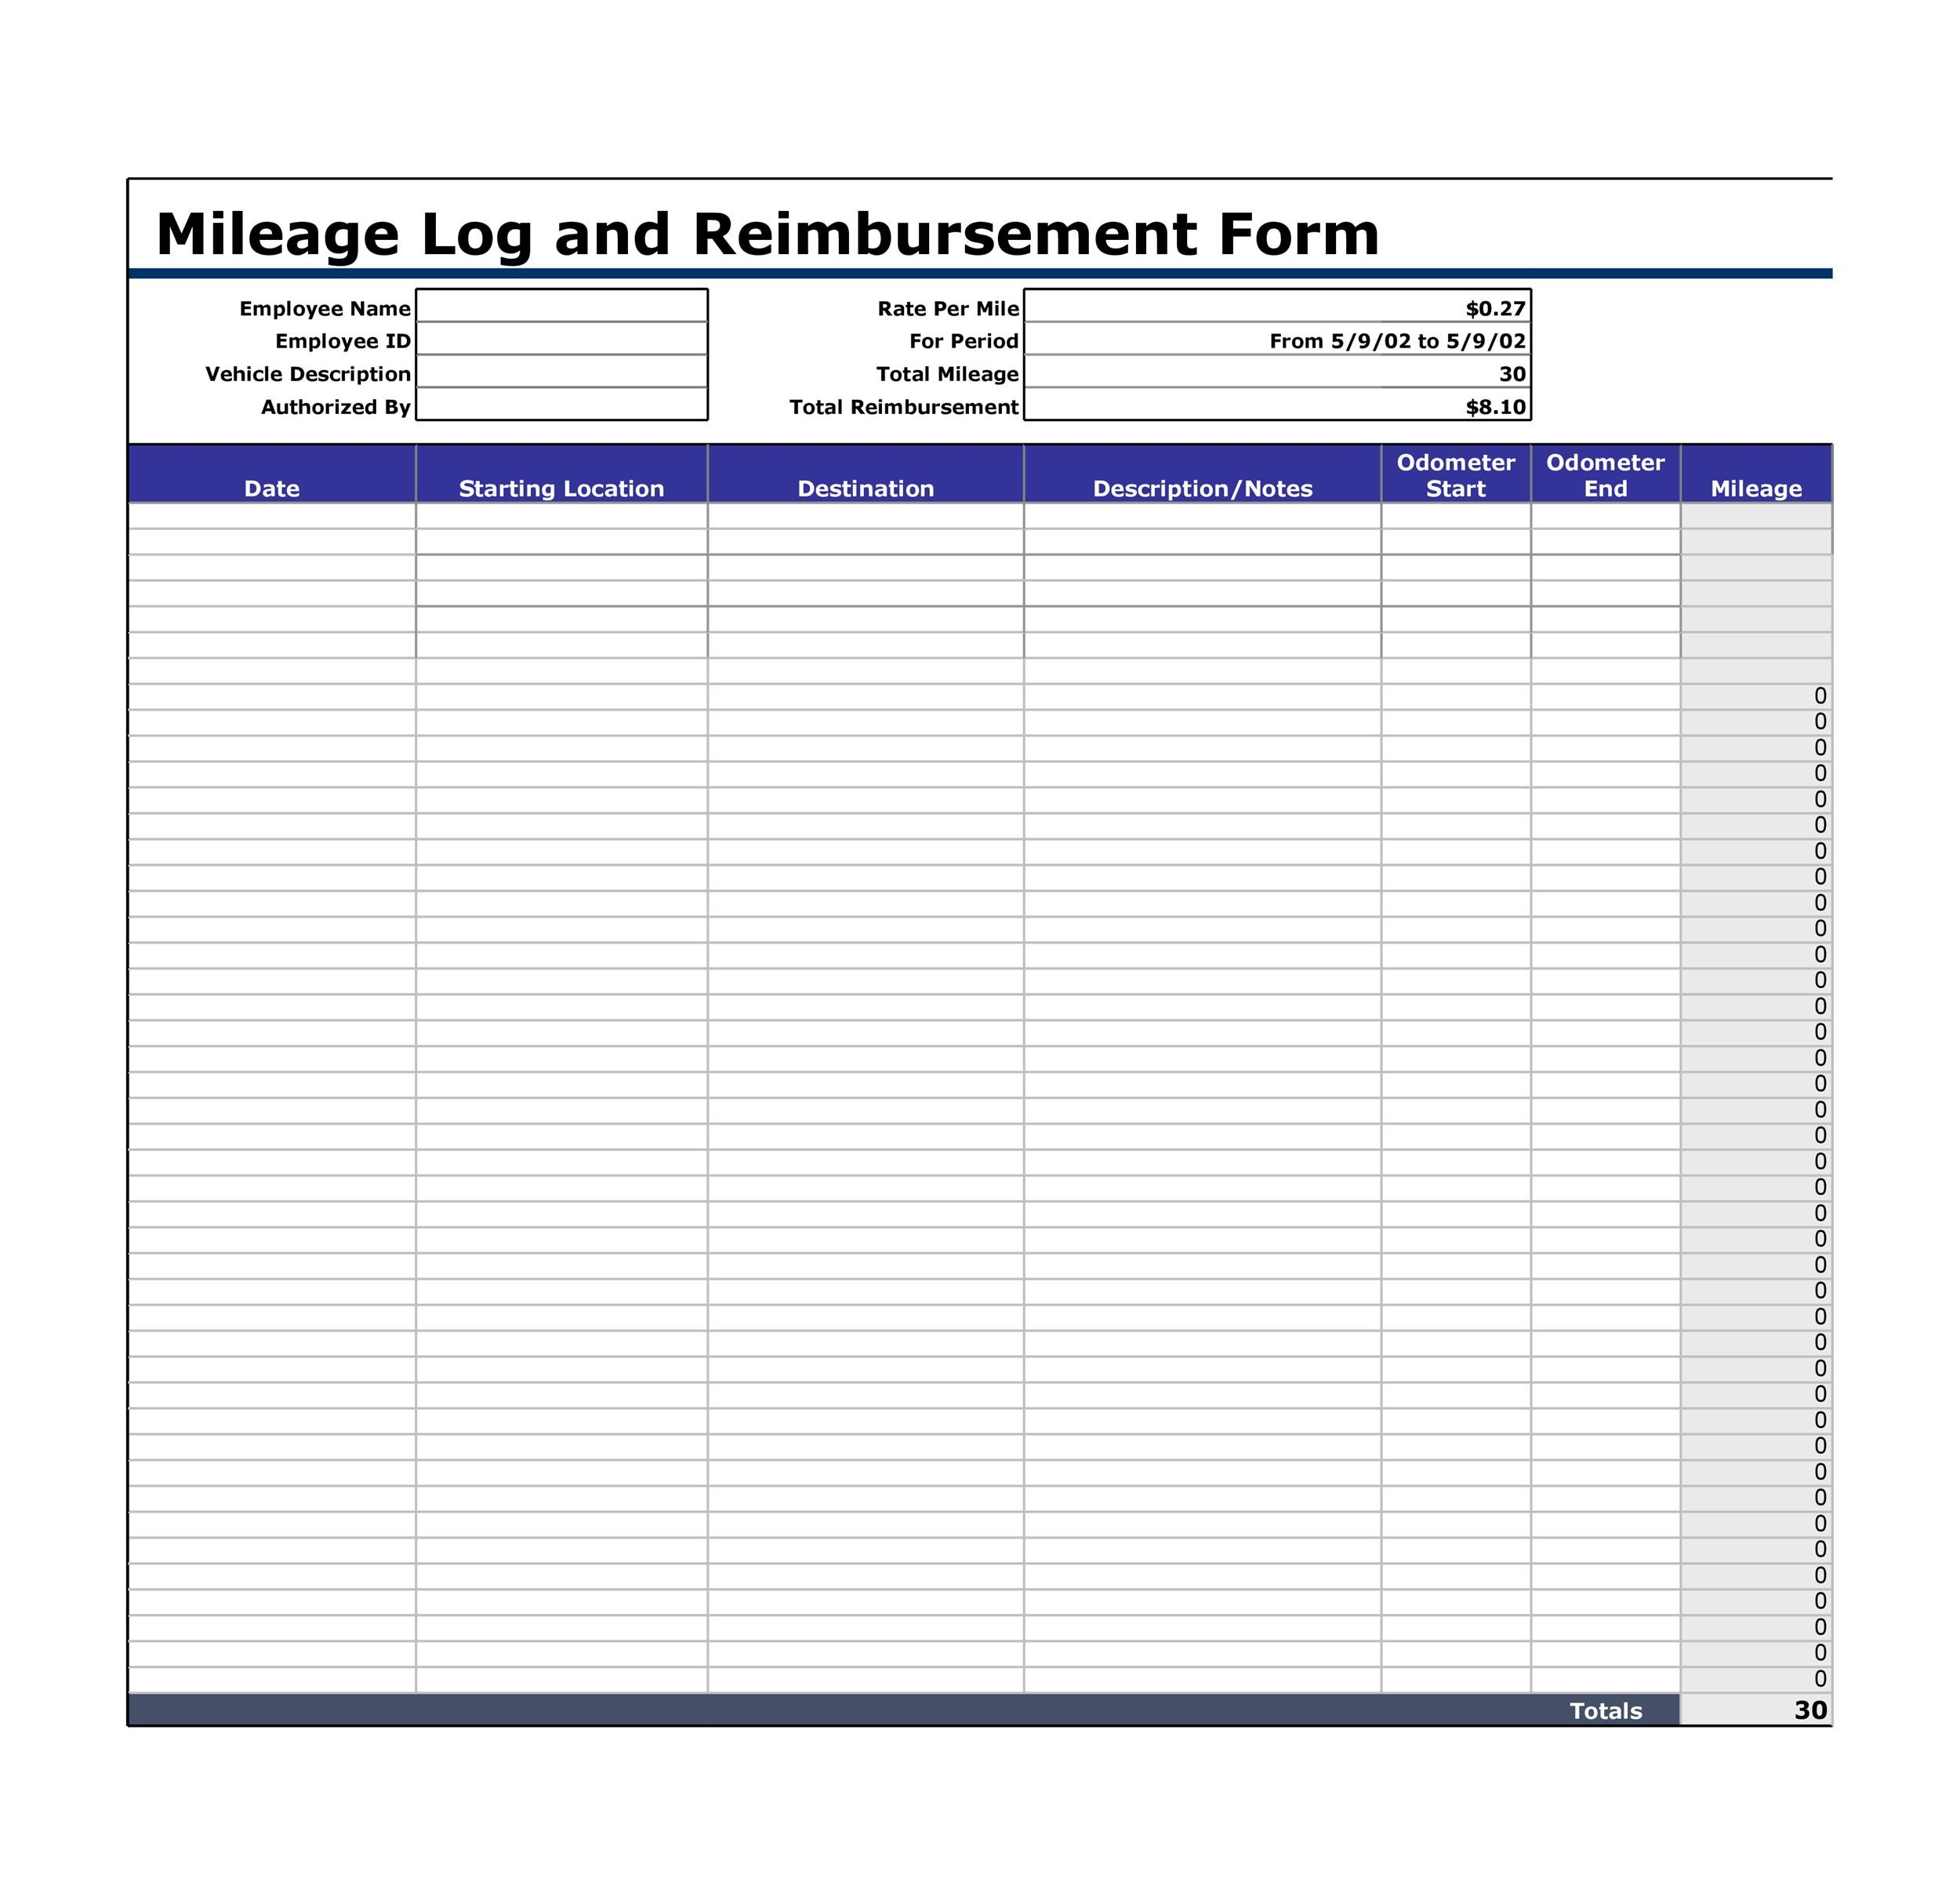 30 Printable Mileage Log Templates (Free) - Template Lab - mileage log template